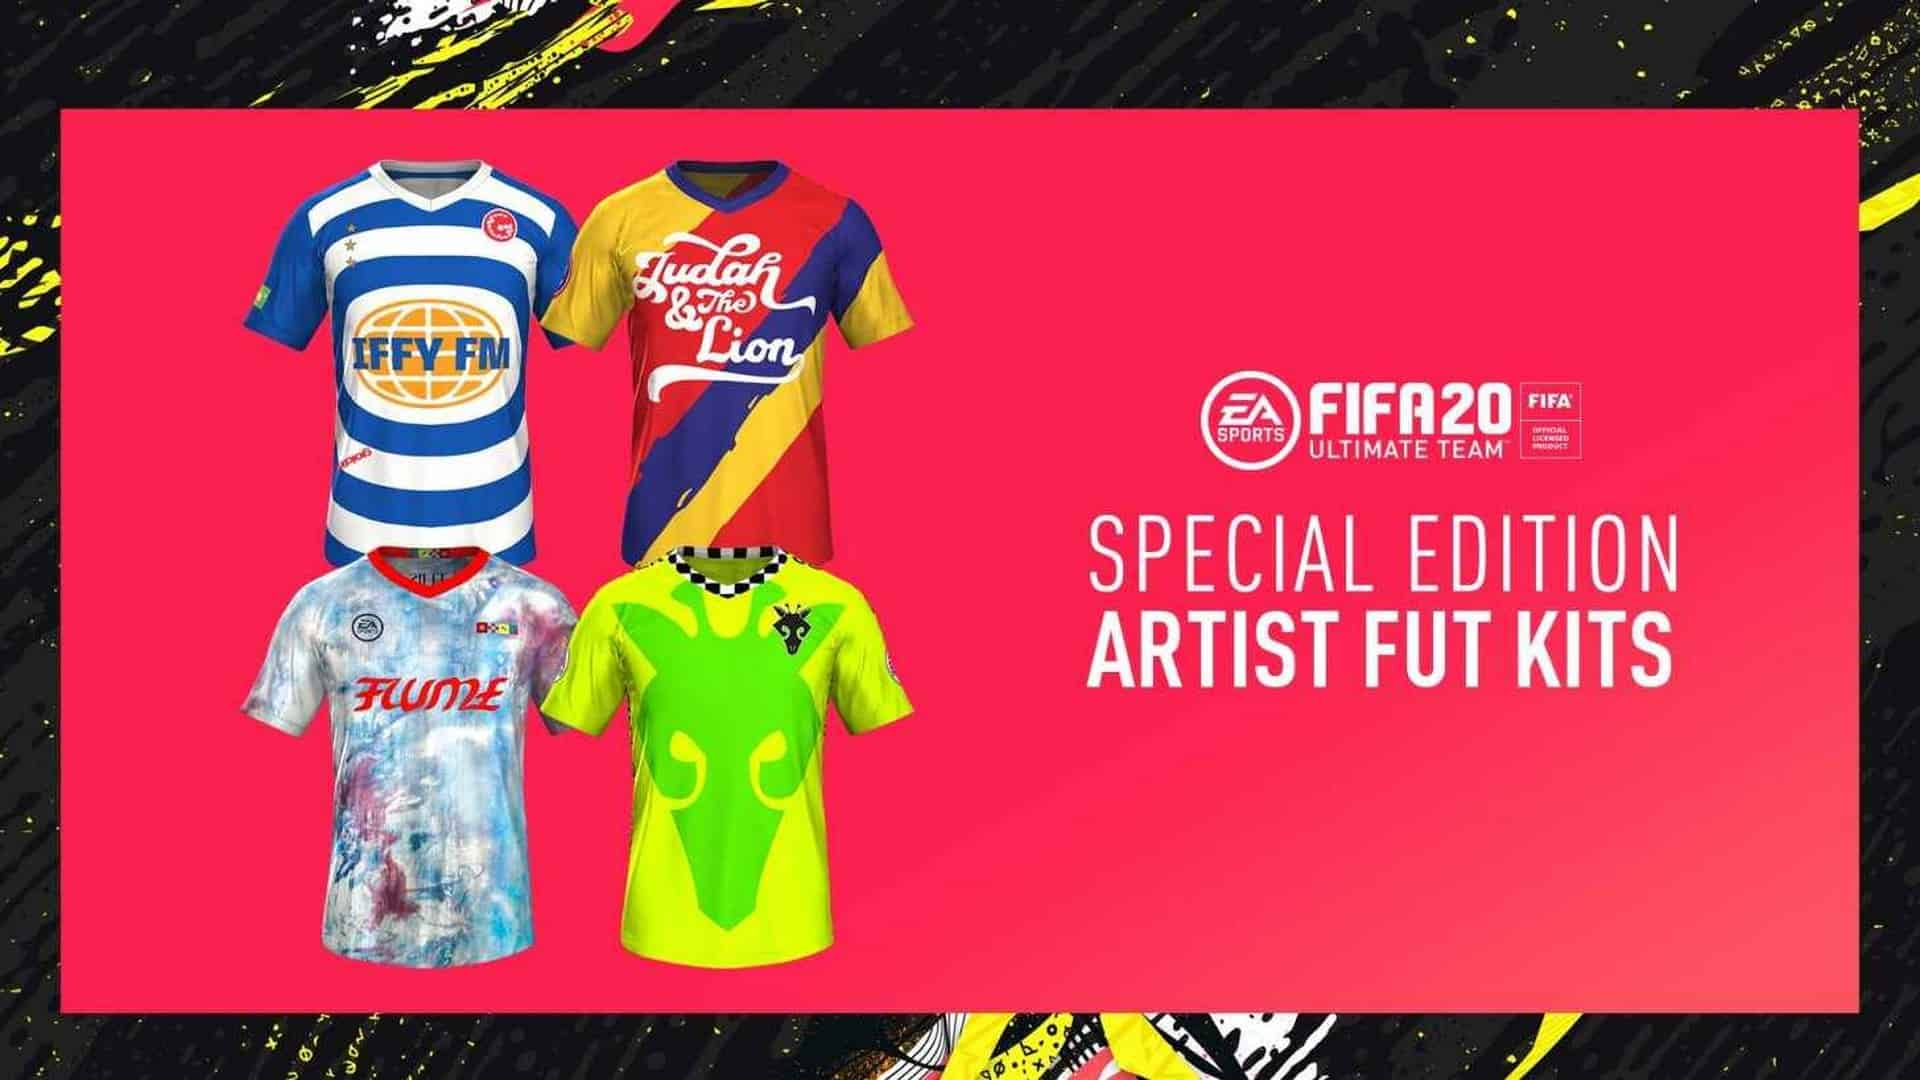 Full FIFA 20 & VOLTA Soundtracks Available Now & First Glimpse Of Kits Designed by Flume, Sofi Tukker, GoldLink, and Judah & The Lion